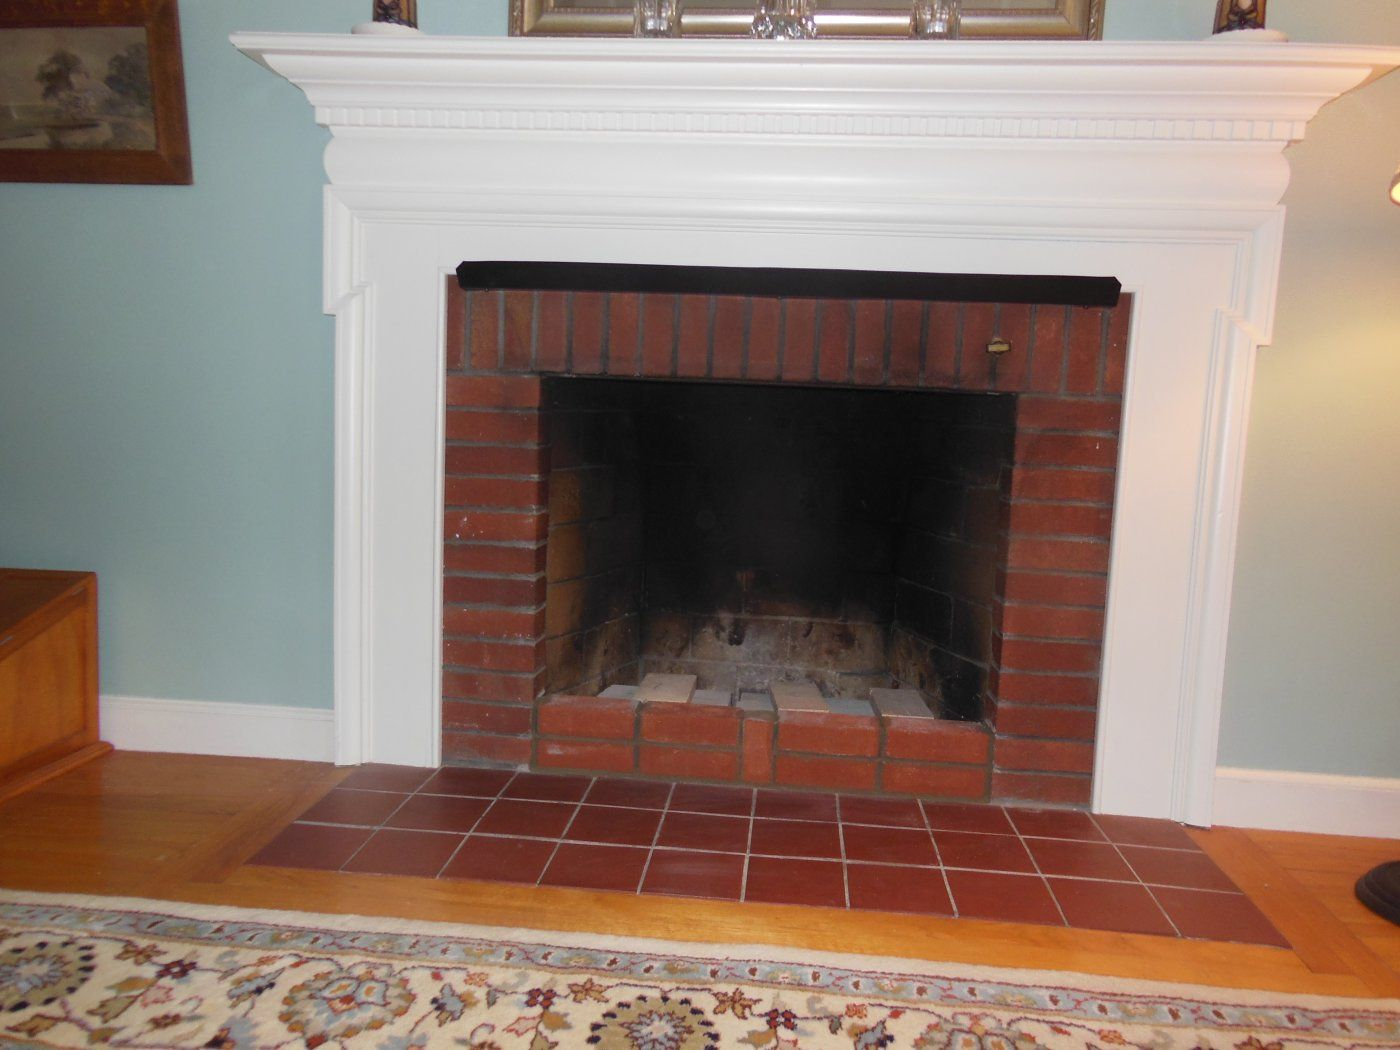 keepers shield damper chimney fireplace to operate how heat